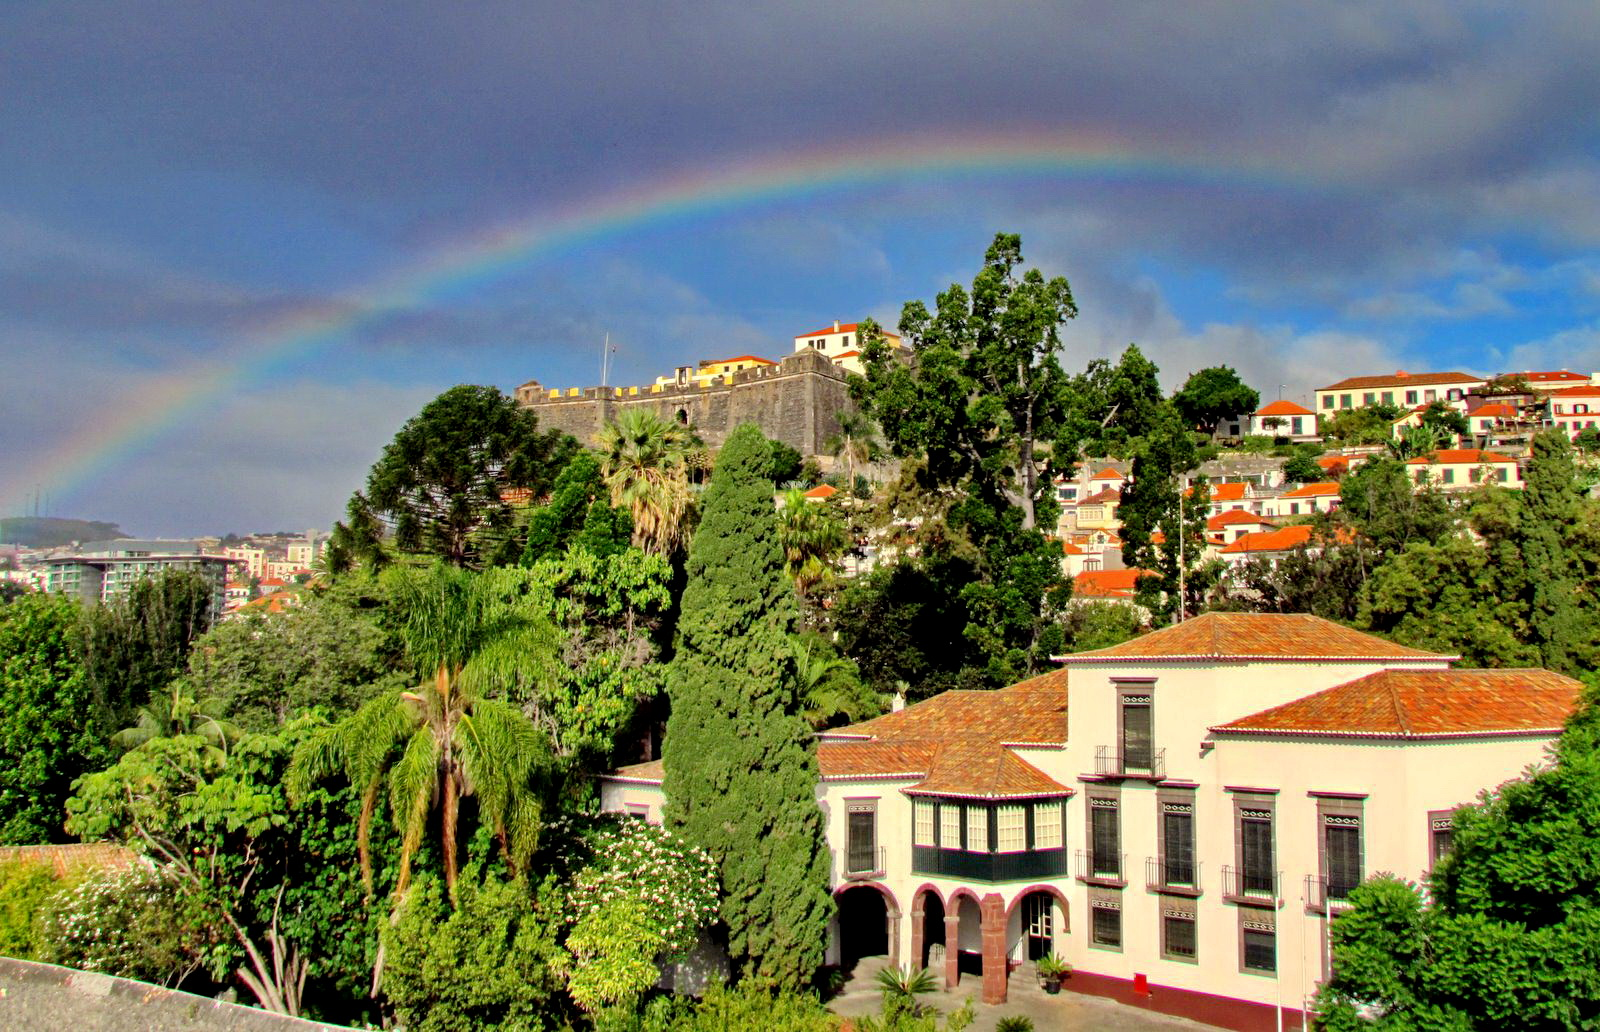 rainbow today in Funchal city